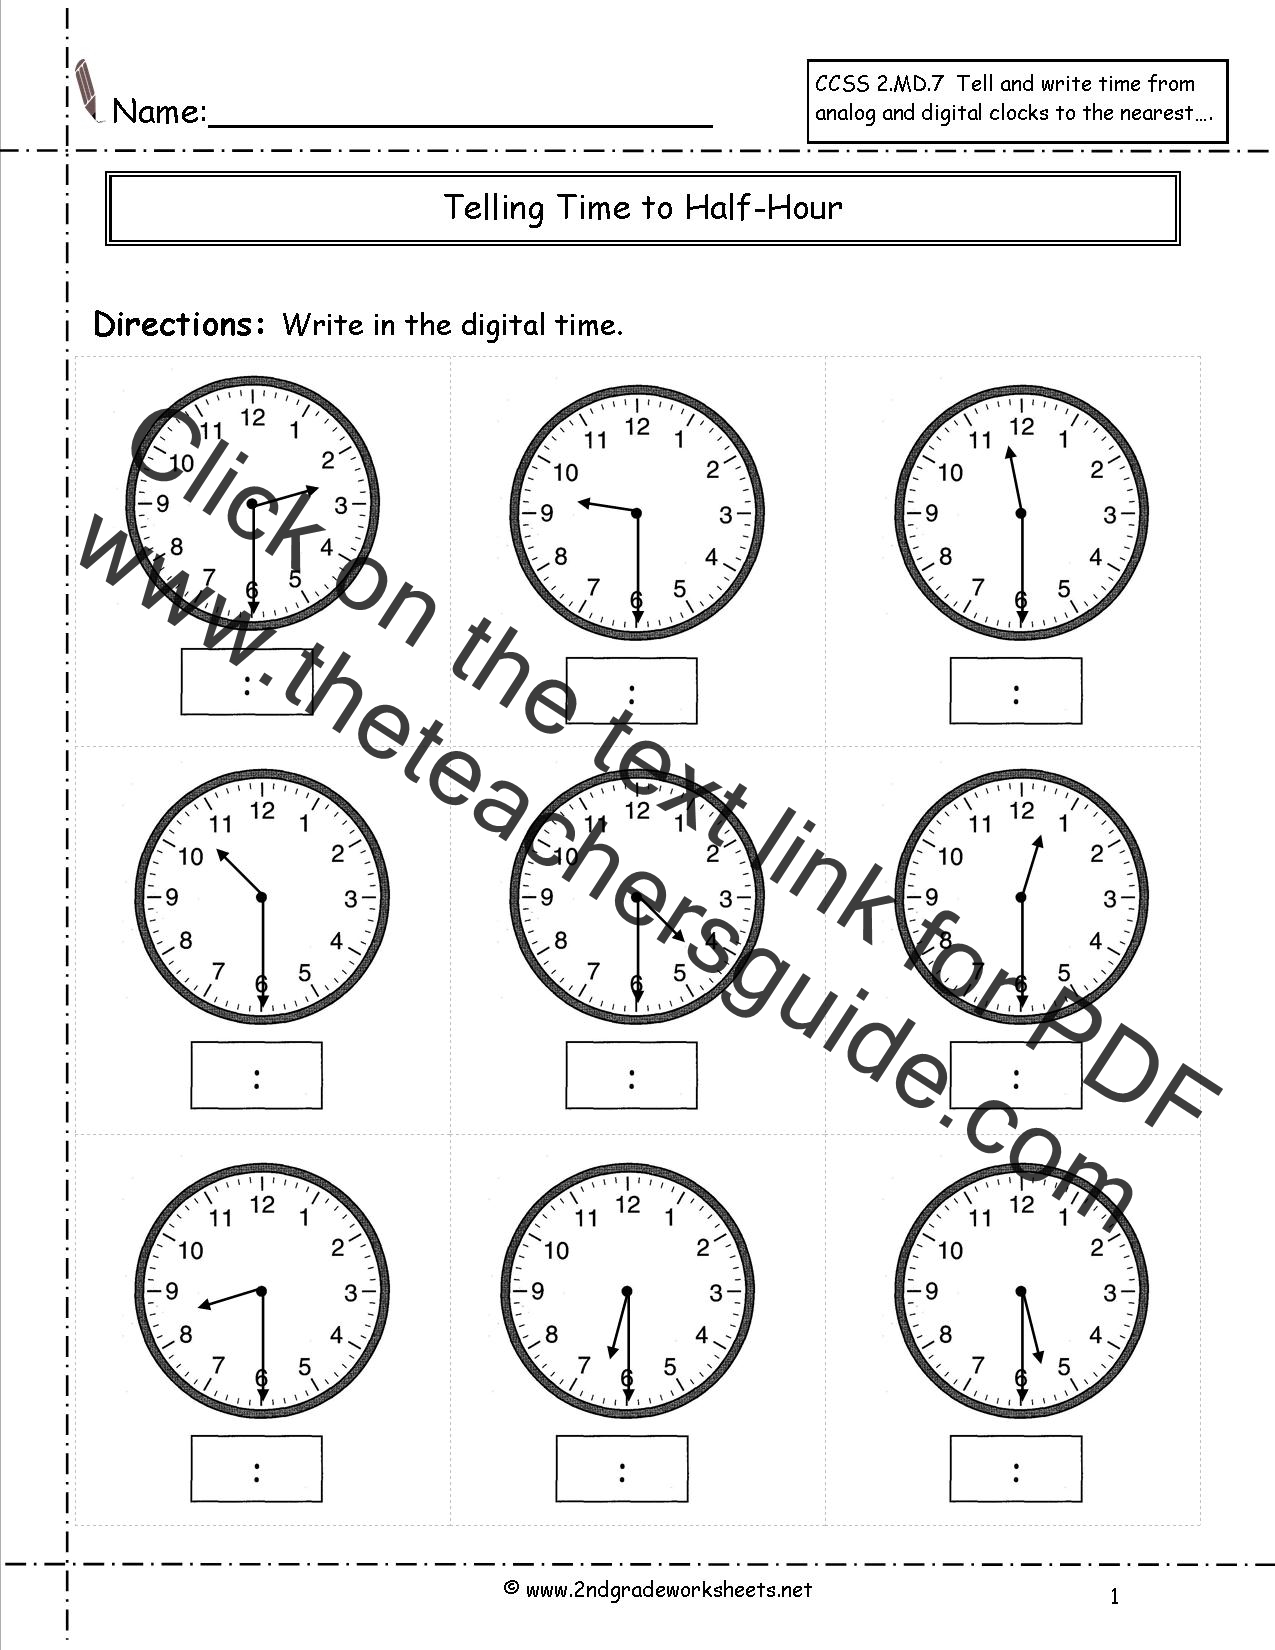 Printables Second Grade Time Worksheets telling and writing time worksheets to nearest half hour worksheet